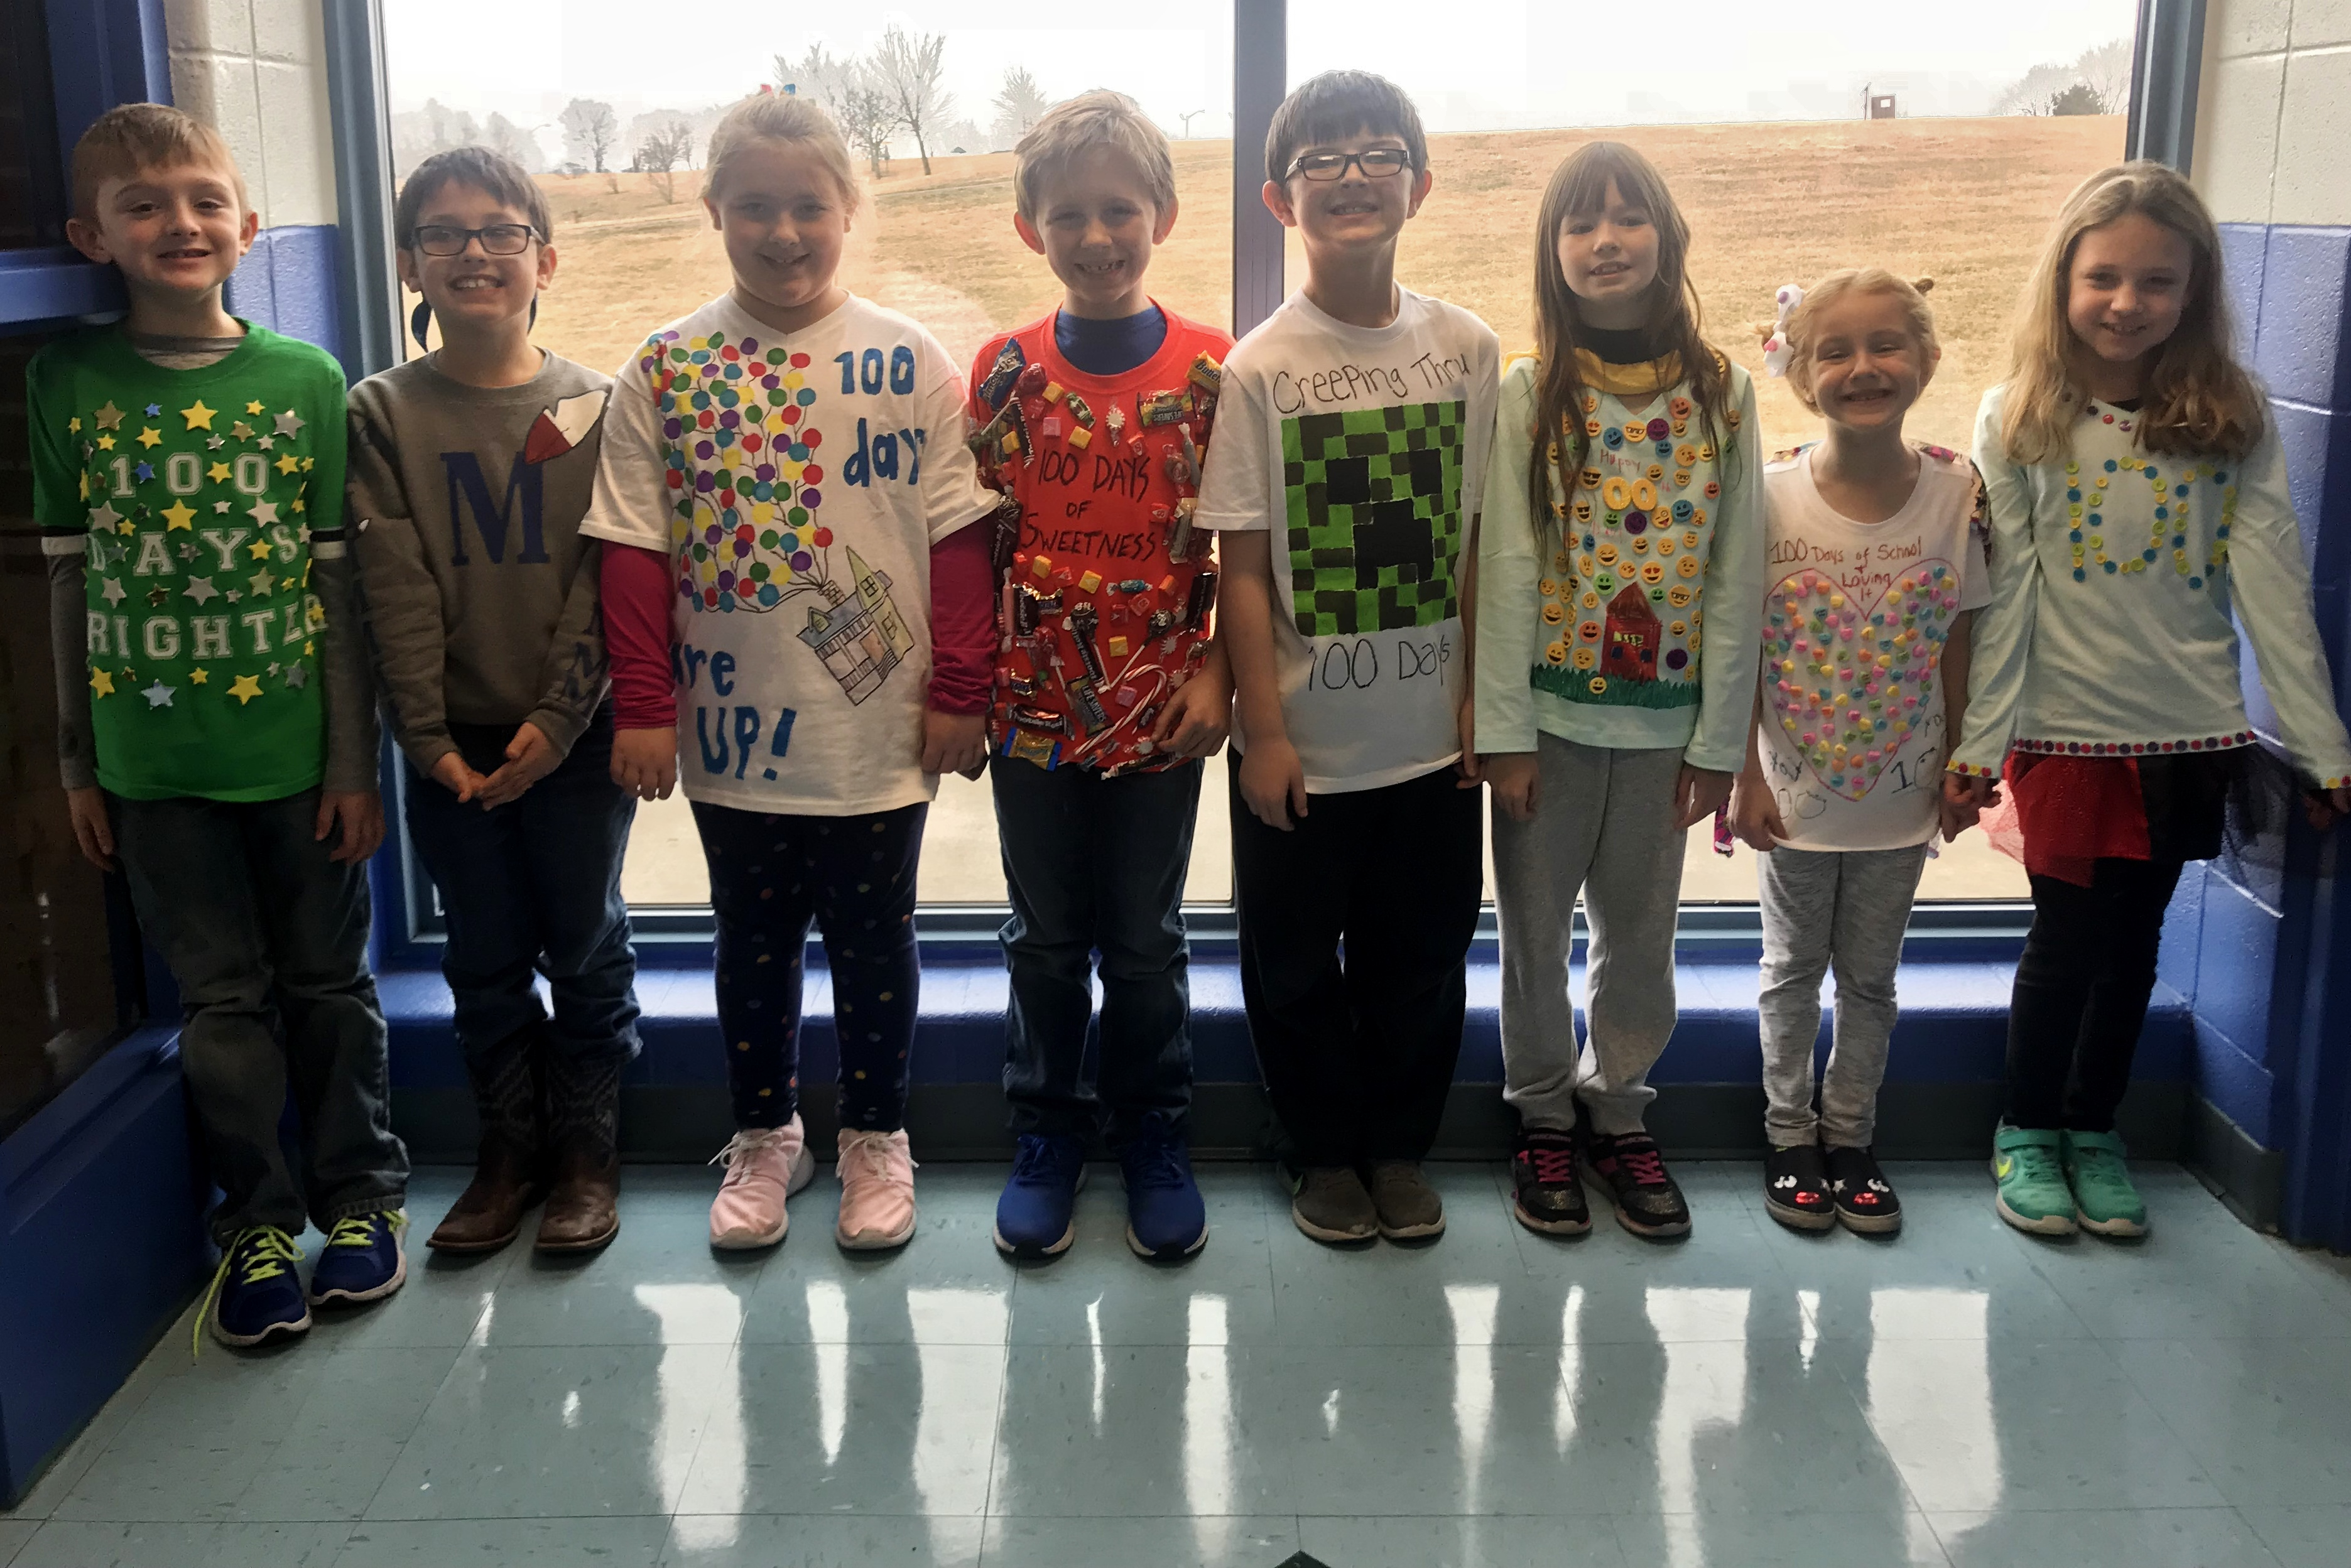 MSE students dressed in their 100th day of school shirts.